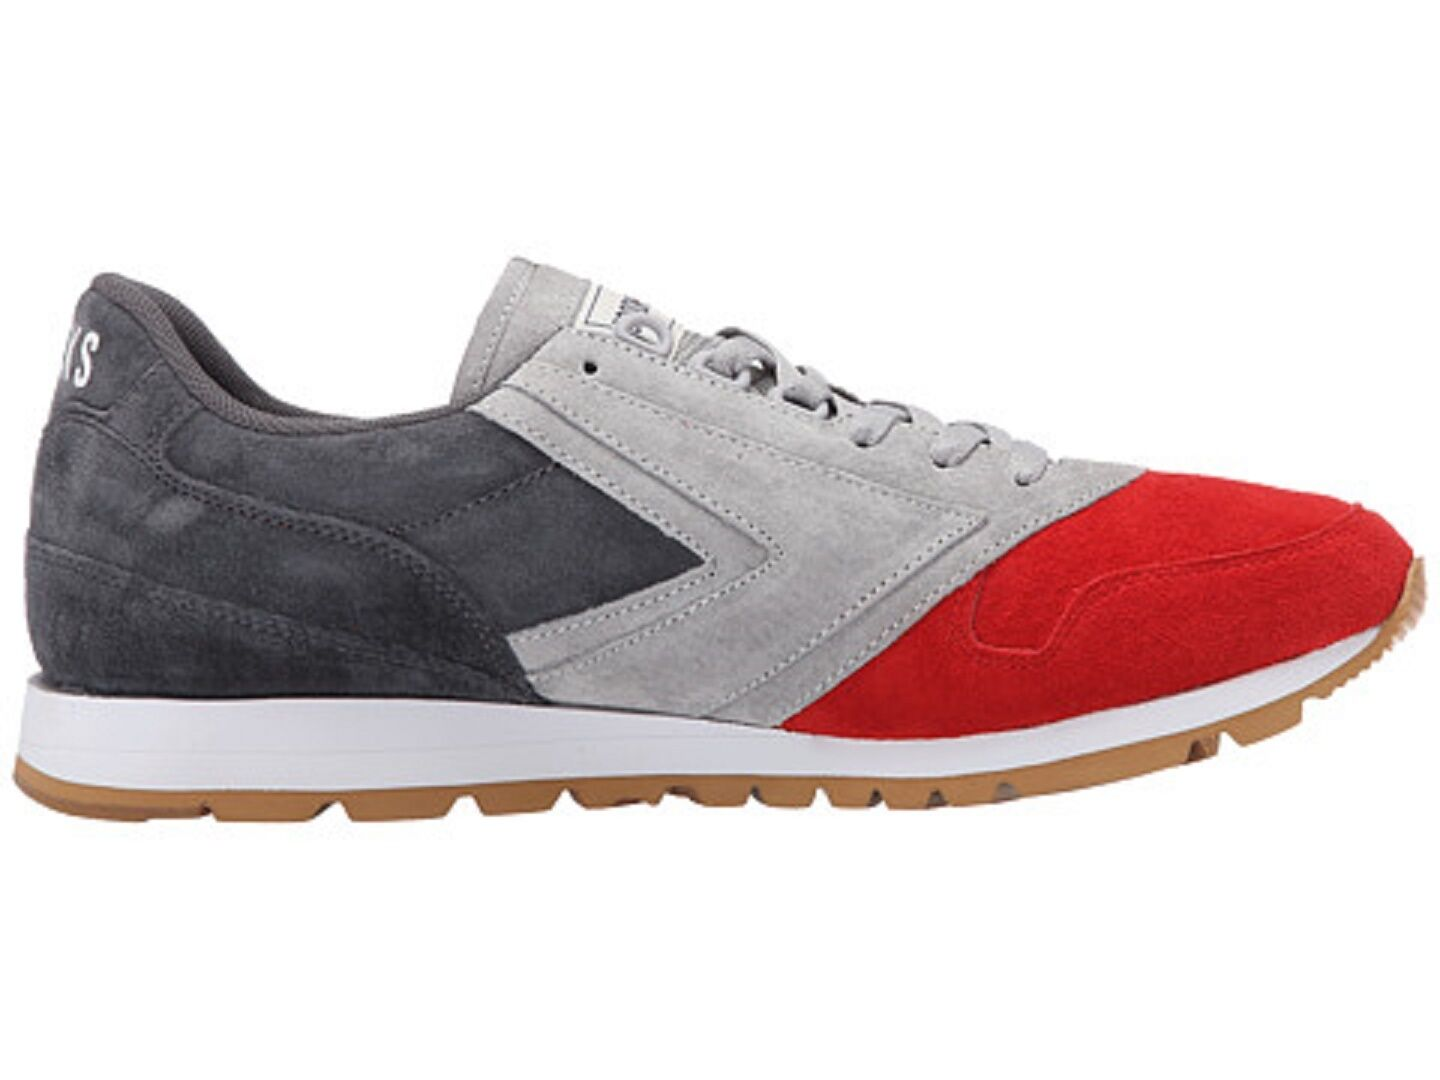 BROOKS 1101781D924 CITY COLLECTION CHARIOT Mn's Schuhes (M) Sleet Suede Casual Schuhes Mn's d9ab1a